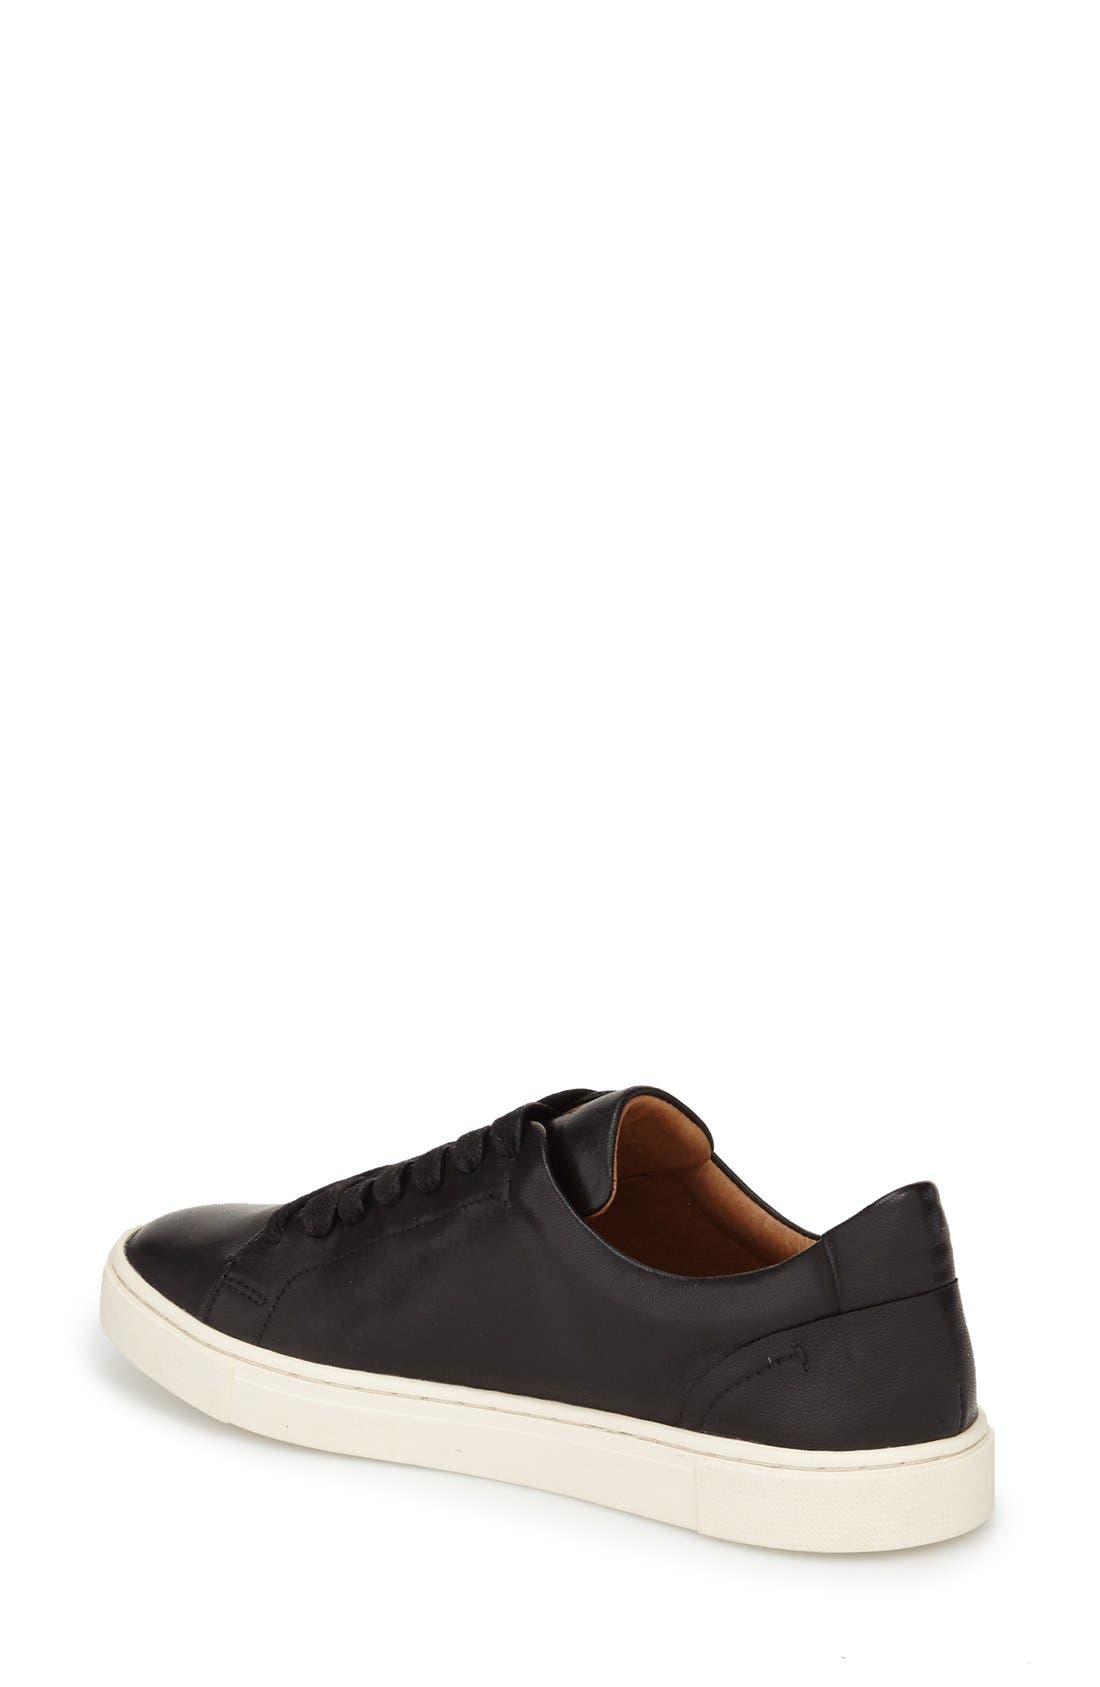 FRYE,                             Ivy Sneaker,                             Alternate thumbnail 2, color,                             BLACK LEATHER